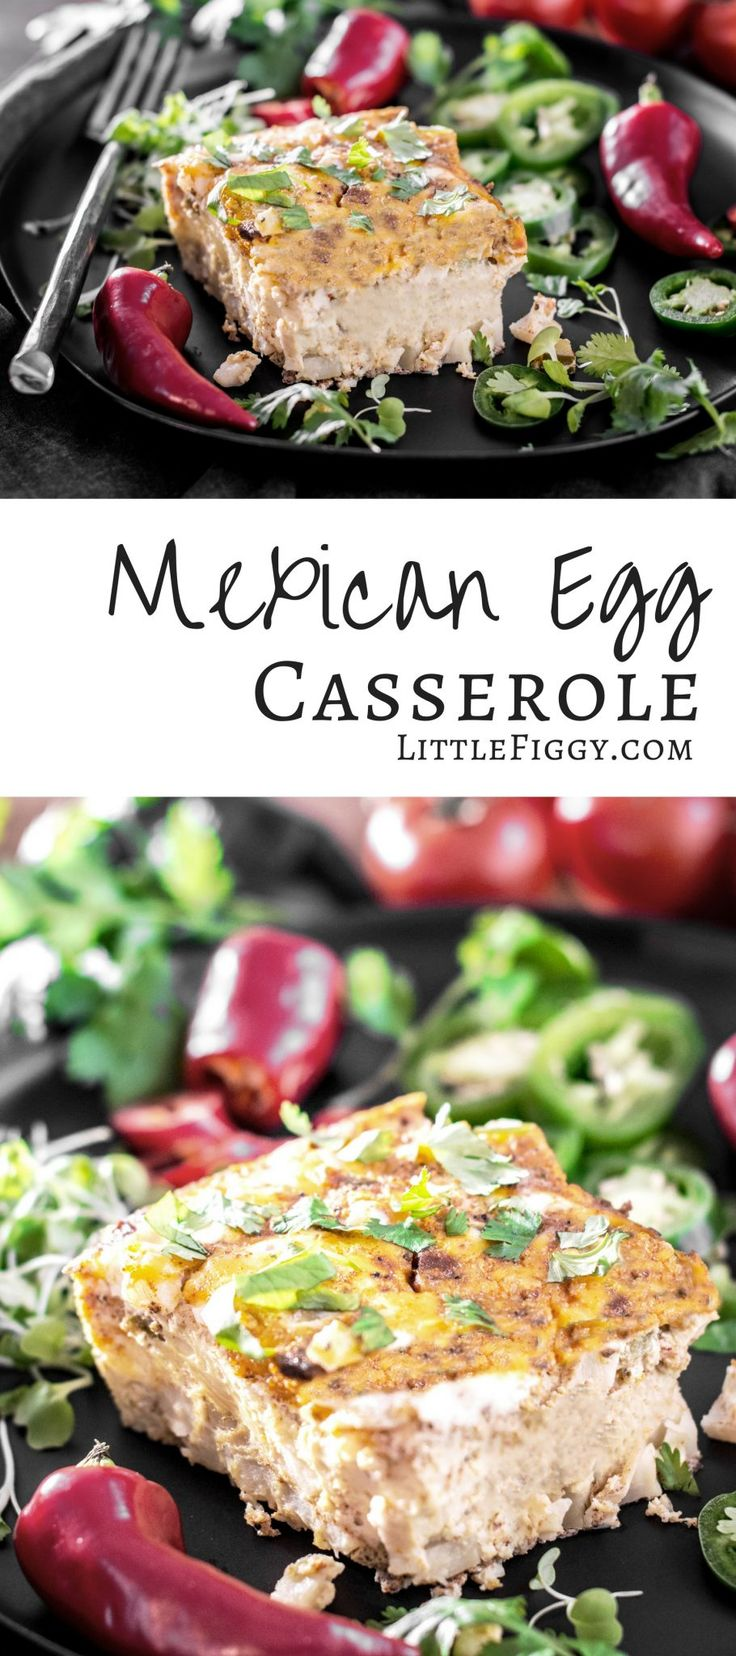 Try this slow cooker recipe for Mexican Egg Casserole made with my go to seasoning mix from @mccormickspice! It really is so easy to enjoy a weekend brunch with family. #GoodMorningBreakfast #ad www.pinterest.com/McCormickSpice